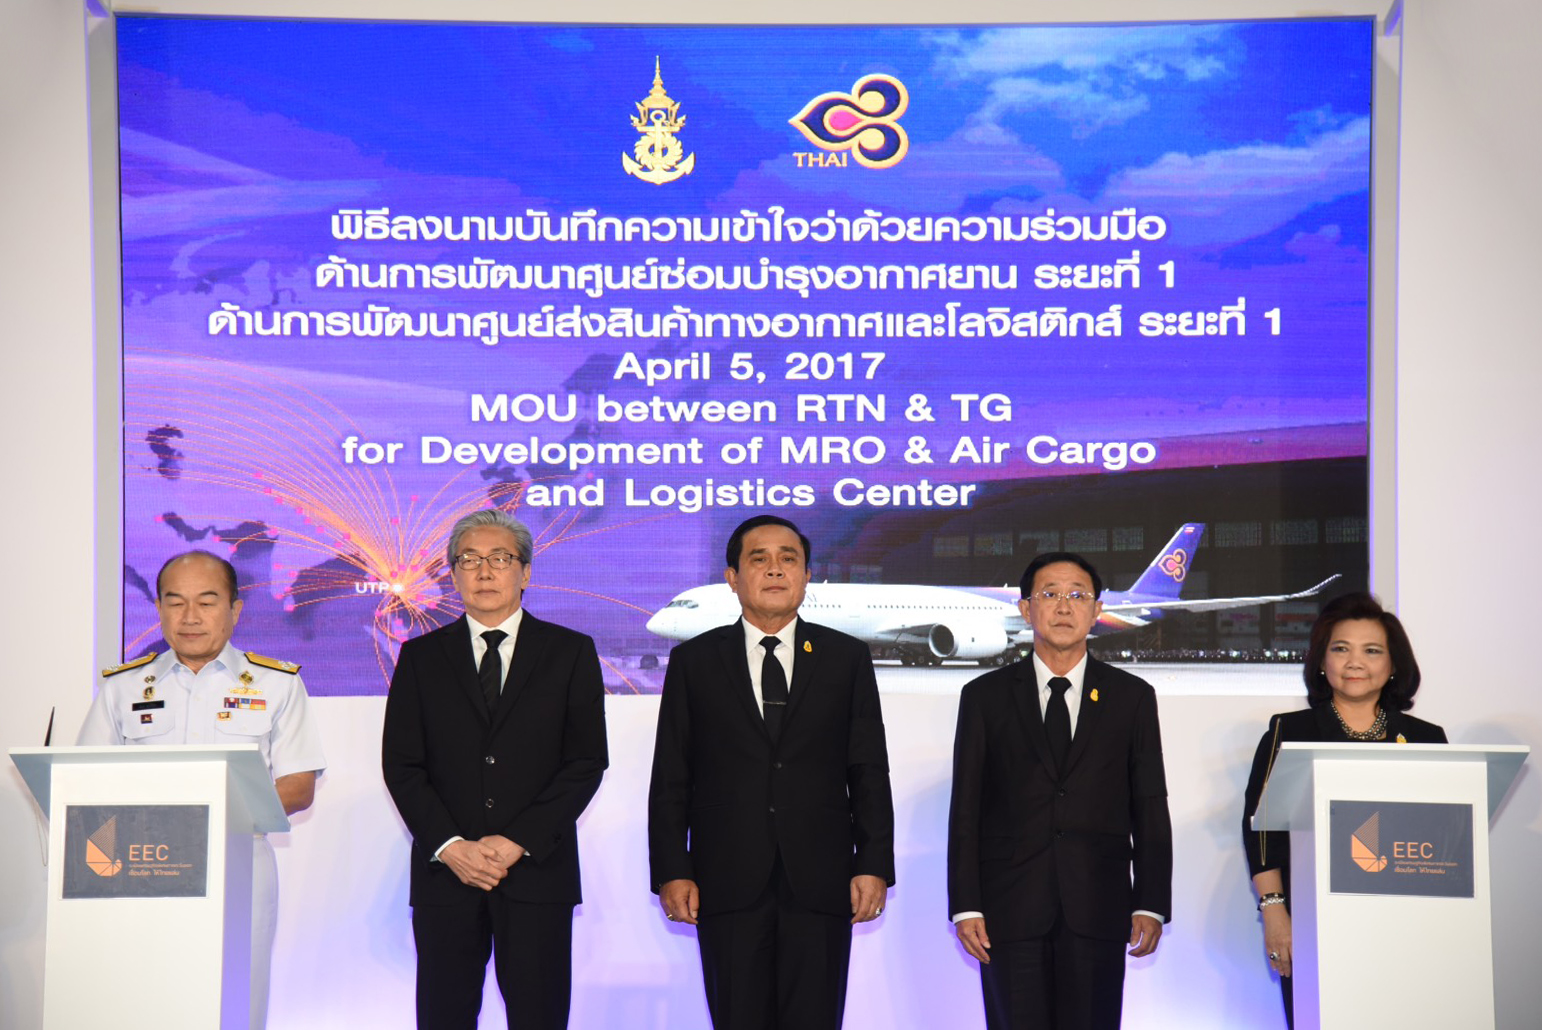 Prime Minister General Prayut Chan-o-cha (center) presided over the Memorandum of Understanding signing ceremony between Thai Airways International Public Company Limited and the Royal Thai Navy on phase one in the development of the new aircraft maintenance center, and air cargo and logistics center.